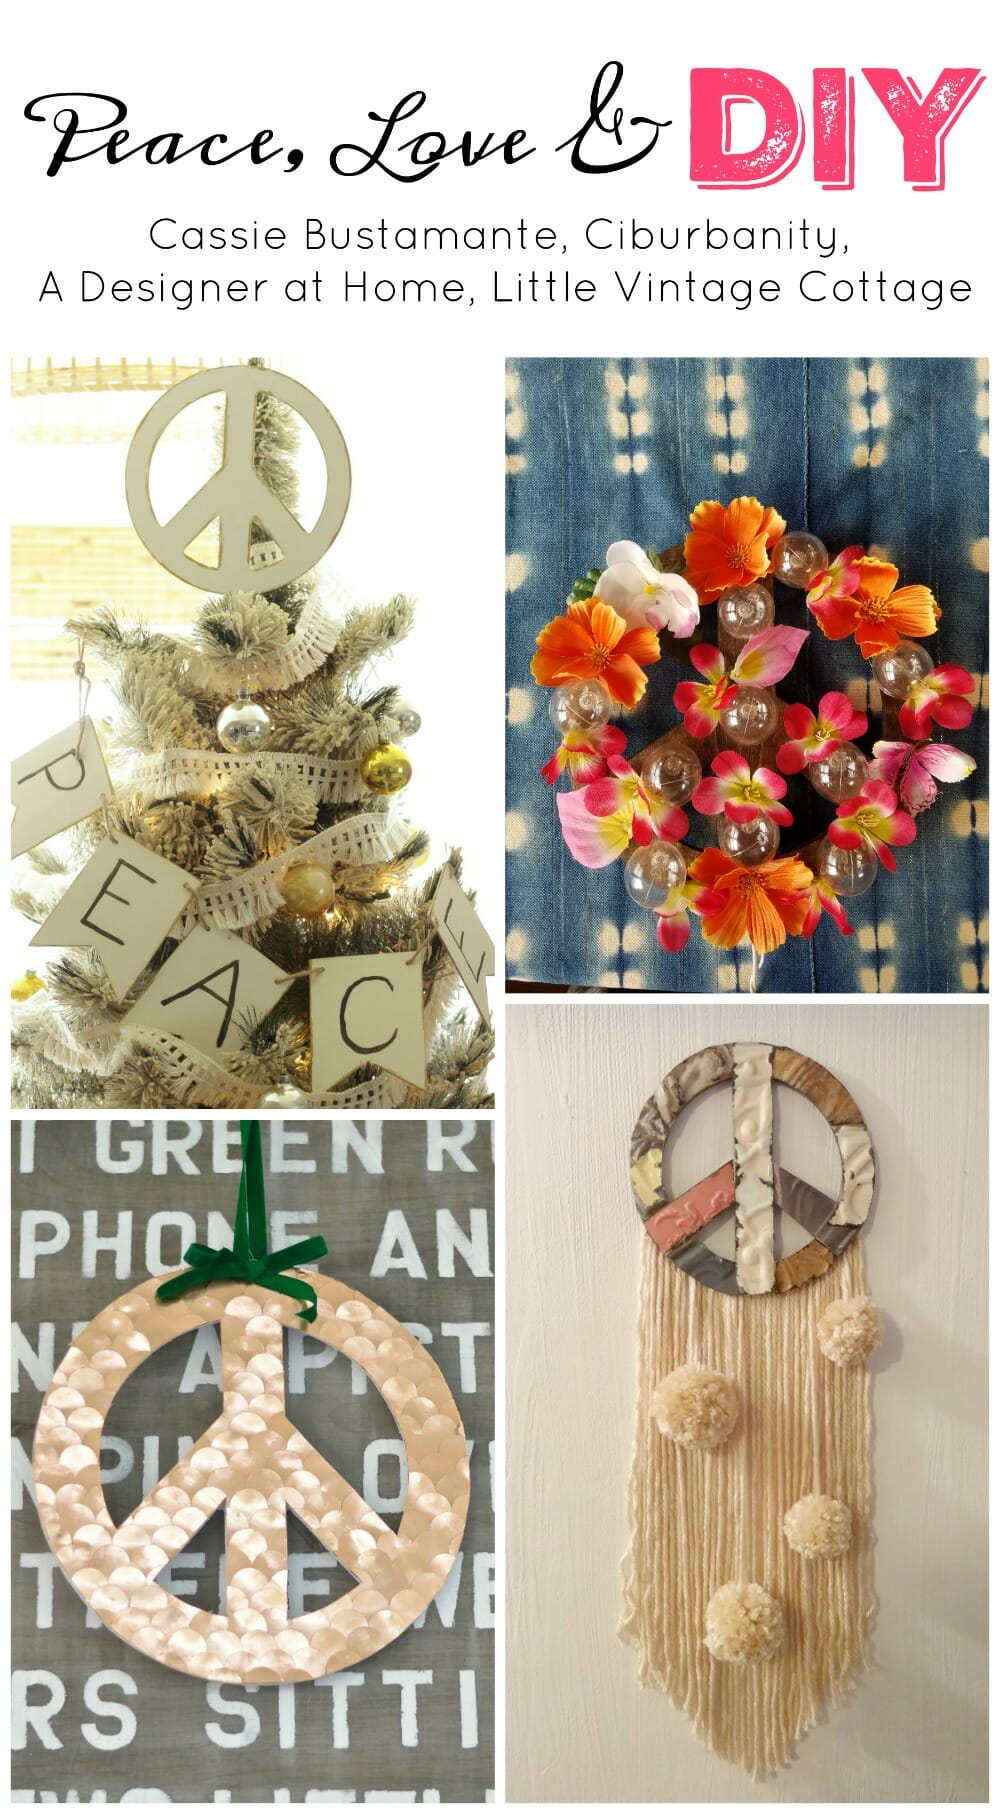 Peace Christmas Tree Topper.Diy Peace Sign Tree Topper Cassie Bustamante